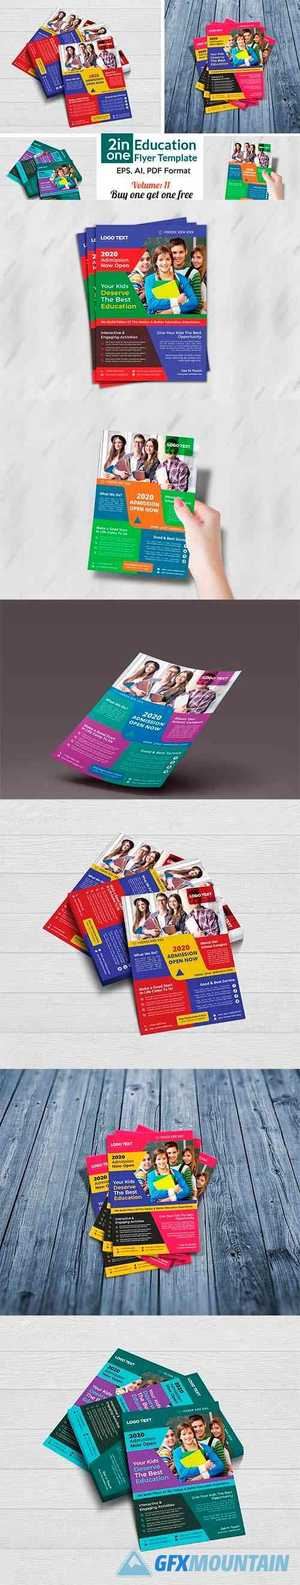 School Admission Flyer Templates 4408404